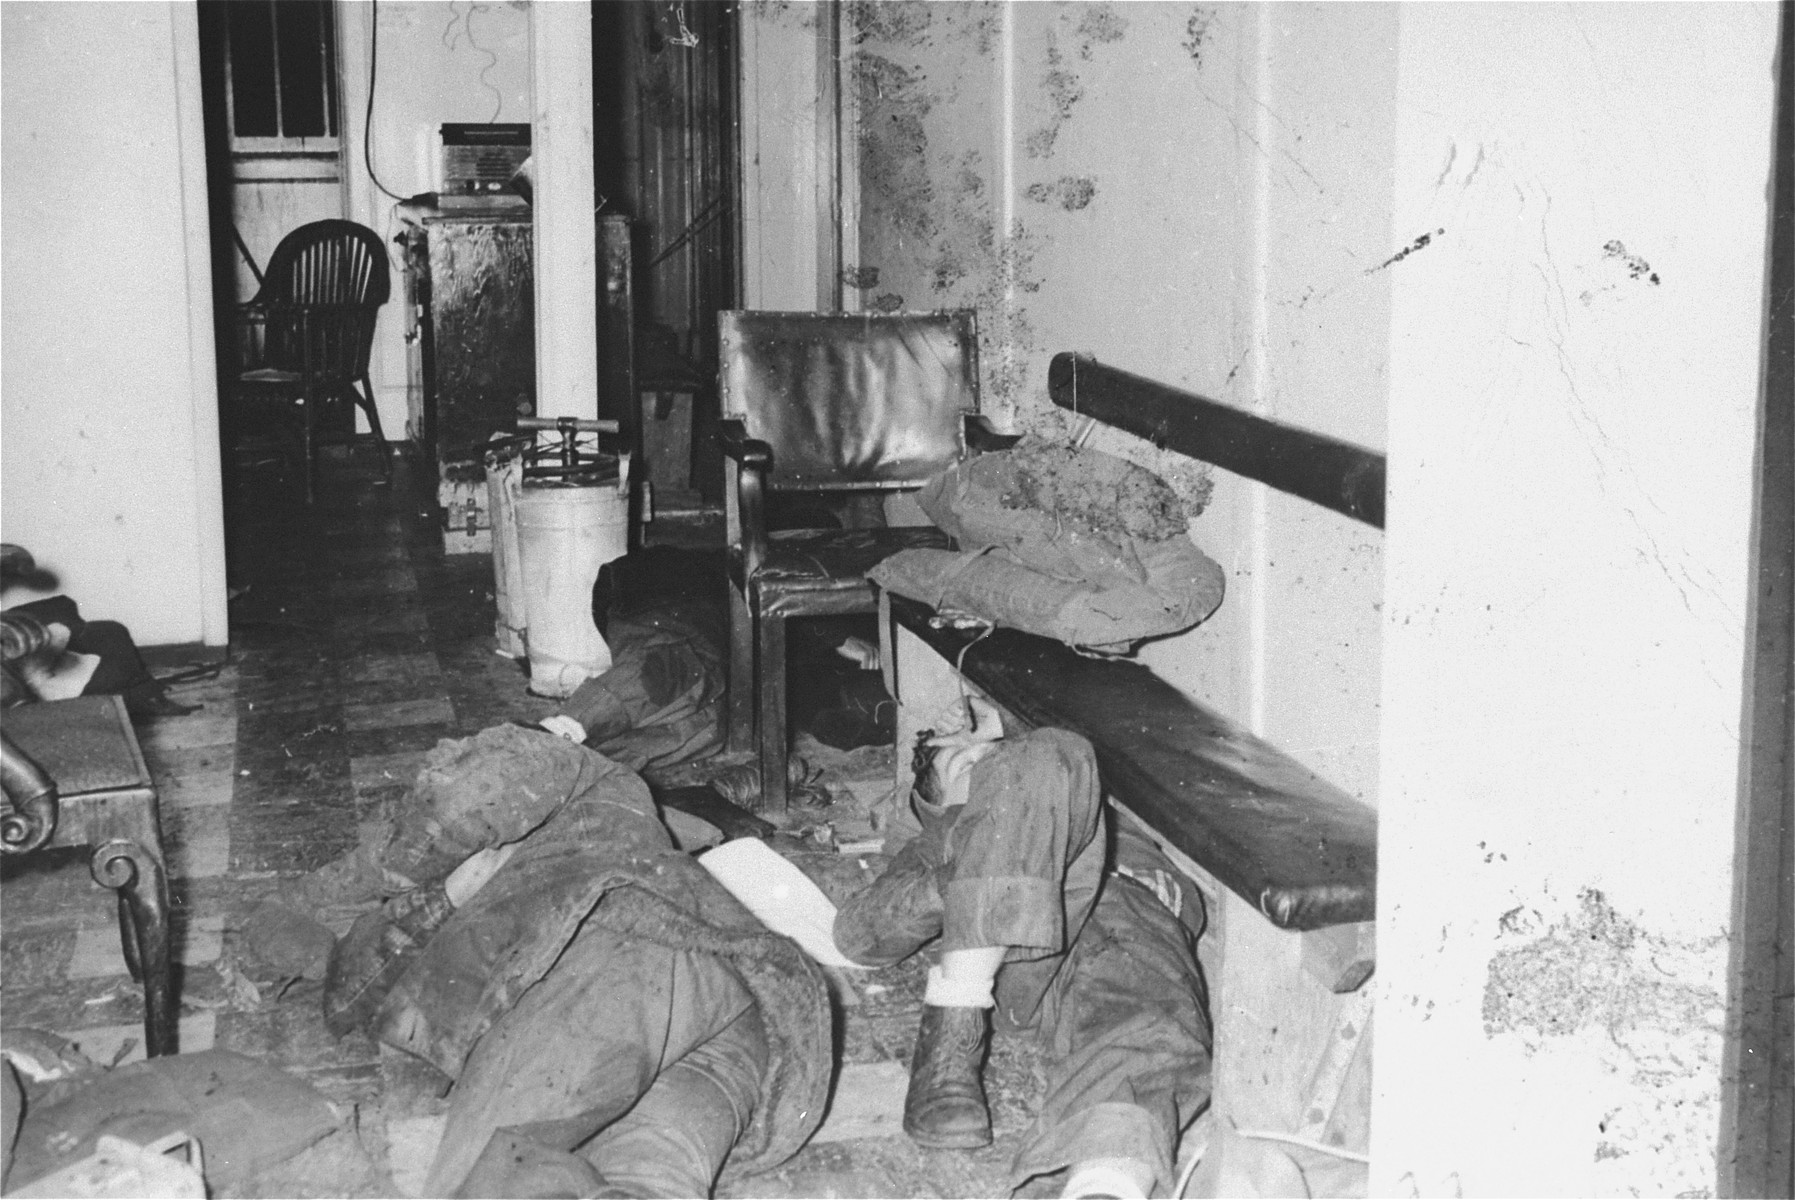 Crew members sleep on the floor of an office in the President Warfield (later the Exodus 1947) after the gale that nearly sunk the ship on its shakedown cruise.